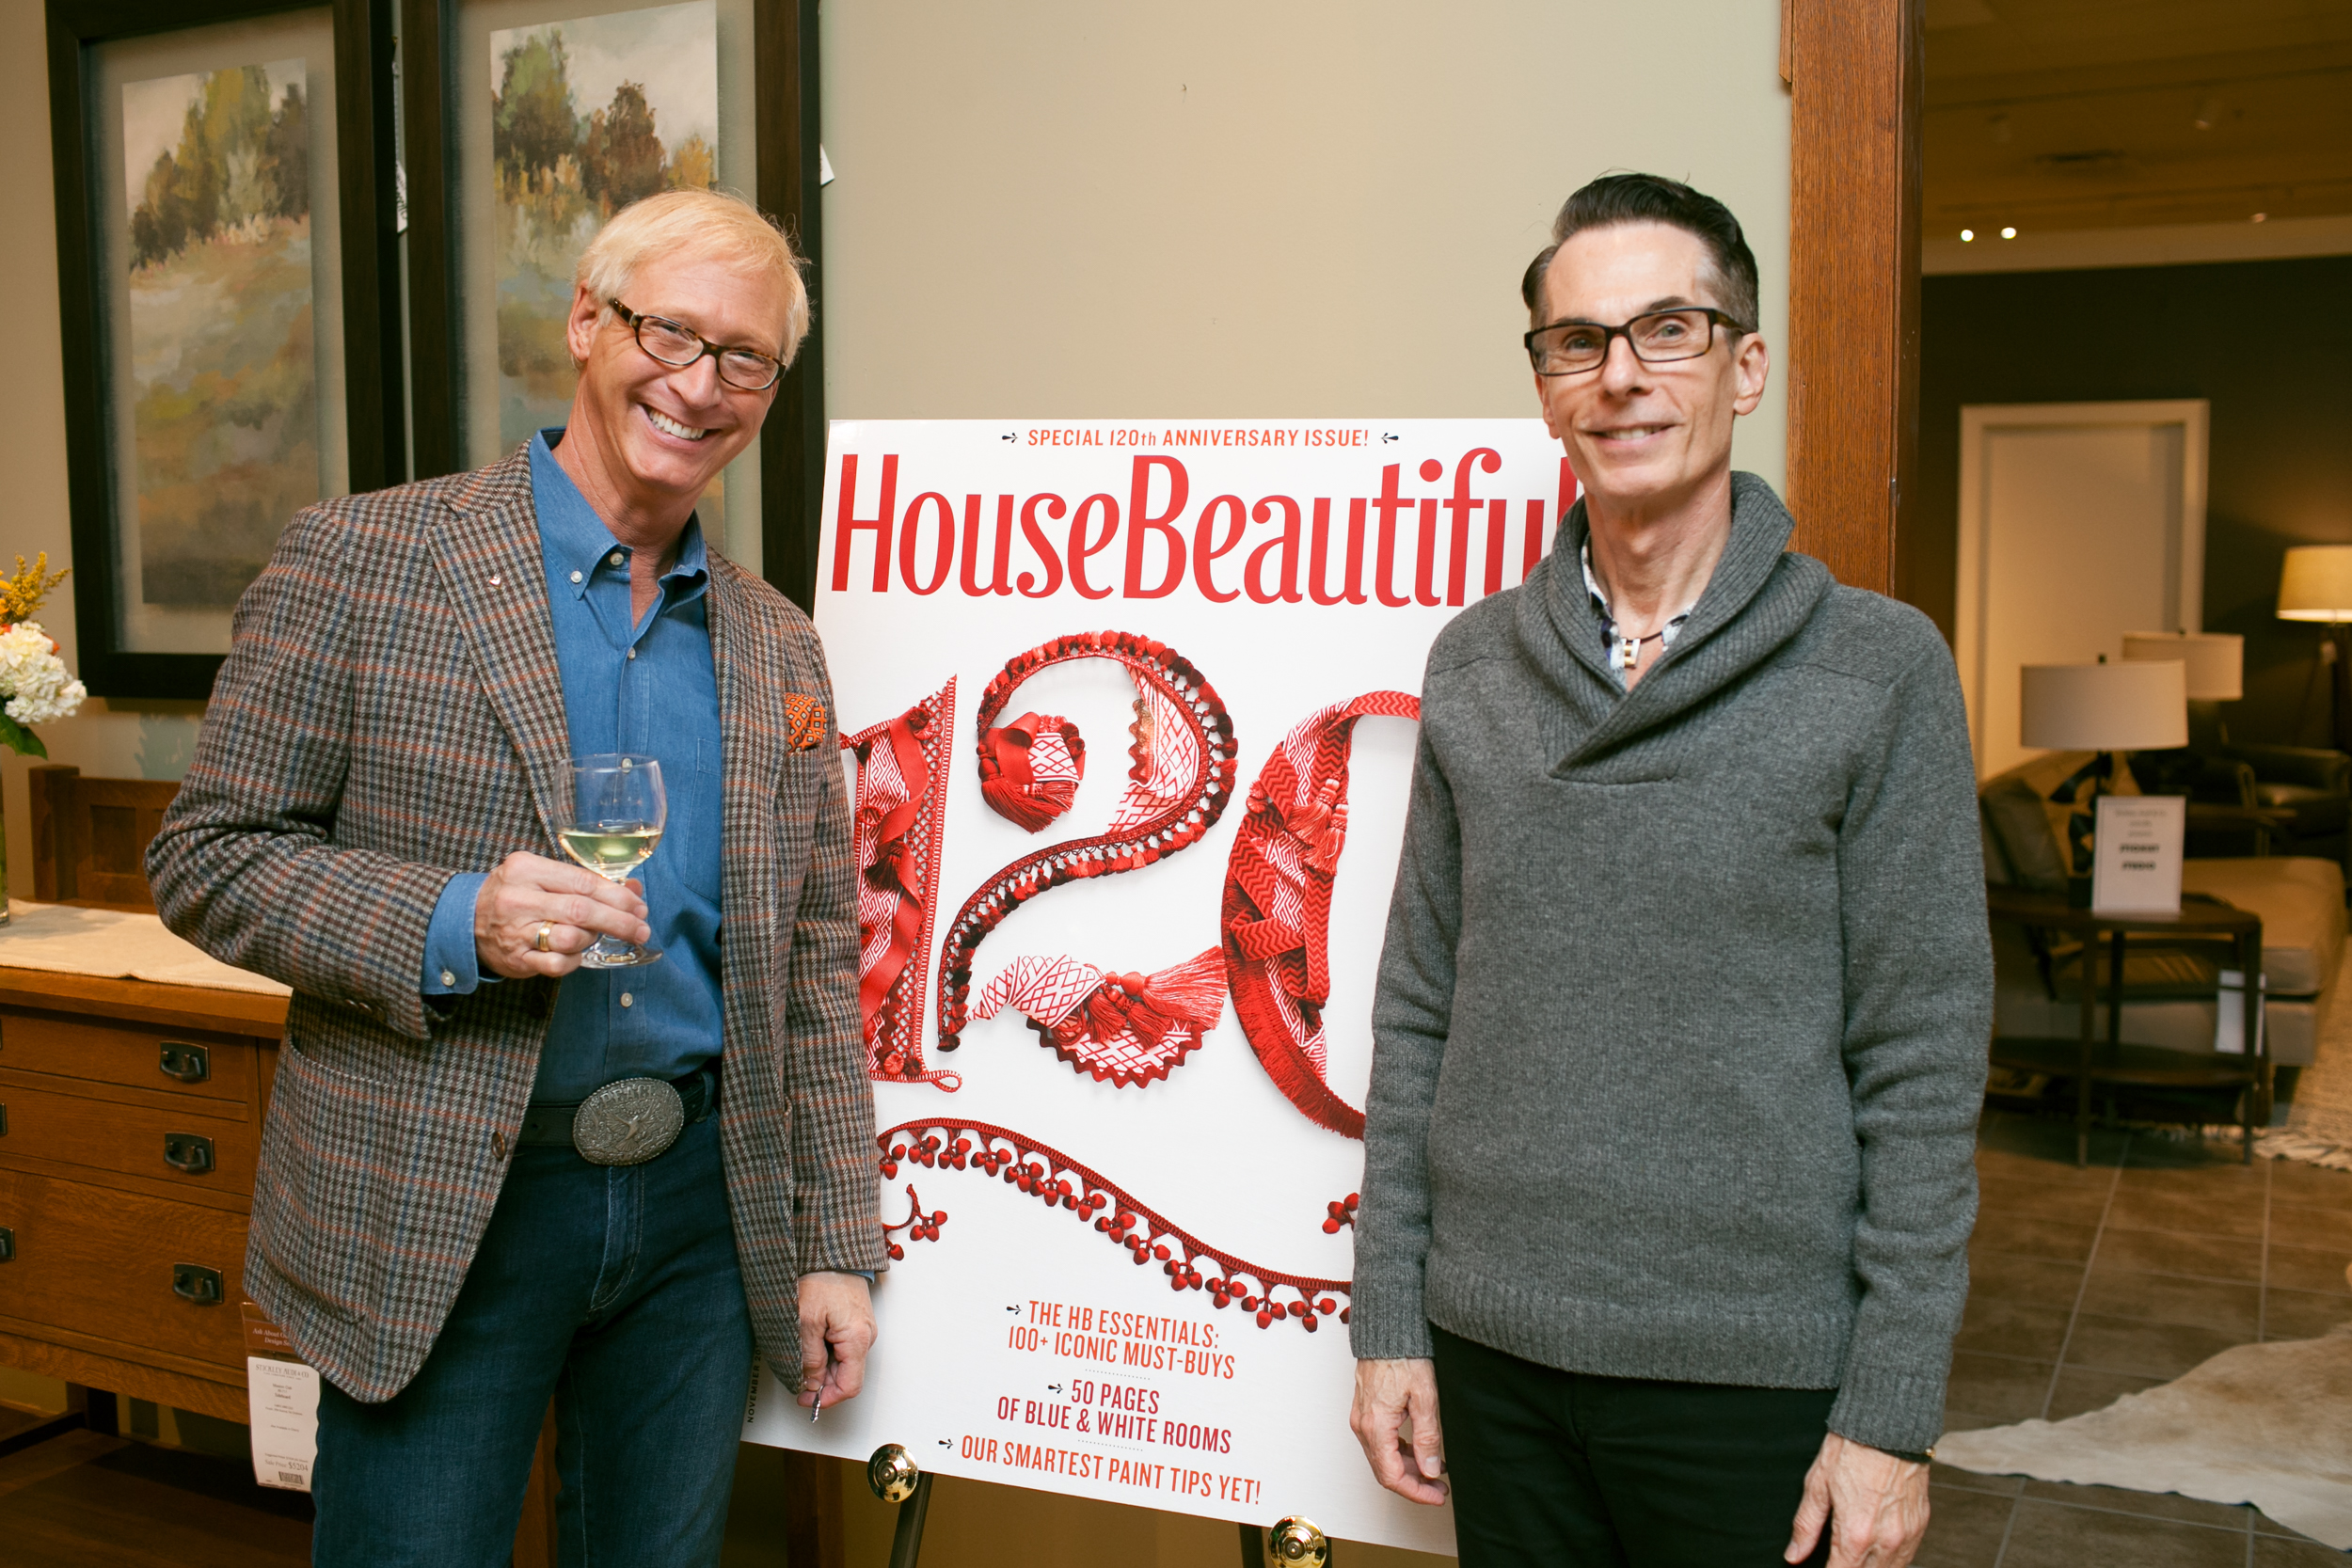 Guests pose with the House Beautiful anniversary cover.